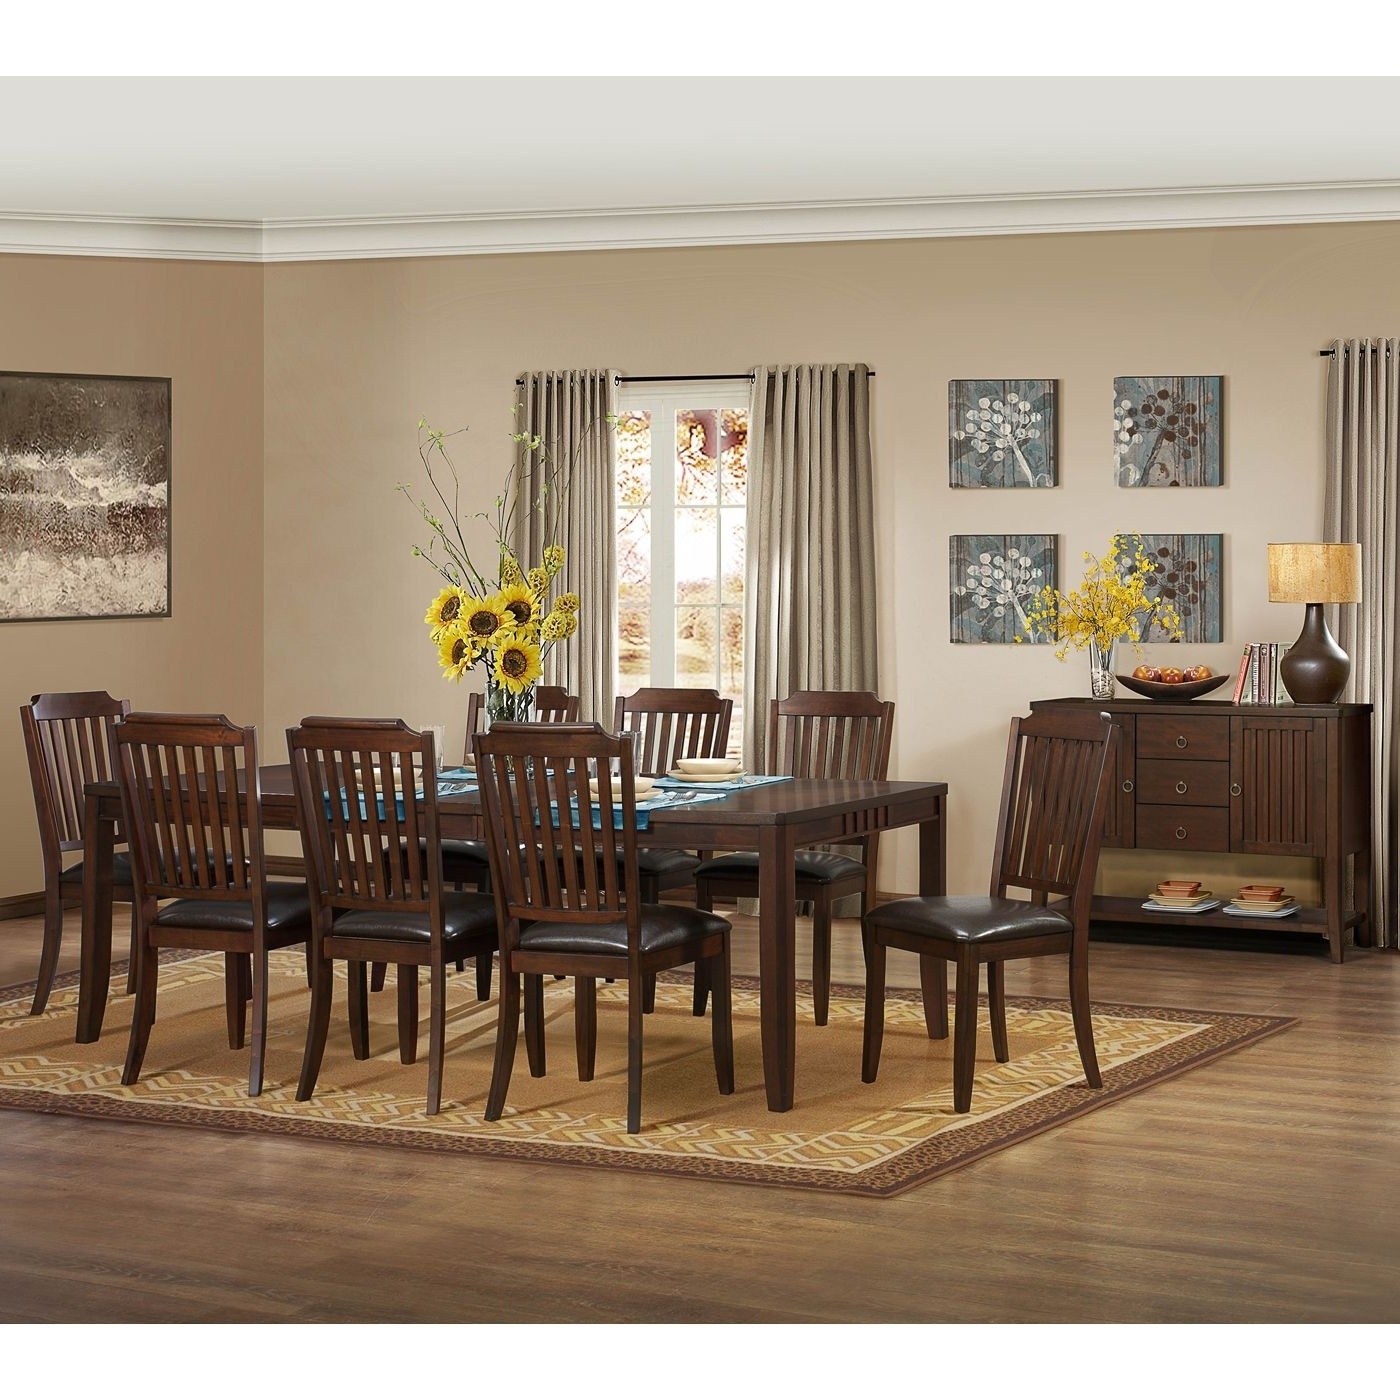 Latest Craftsman 7 Piece Rectangle Extension Dining Sets With Arm & Side Chairs Pertaining To Homelegance 5101 92 Dickens Dining Table (View 10 of 25)